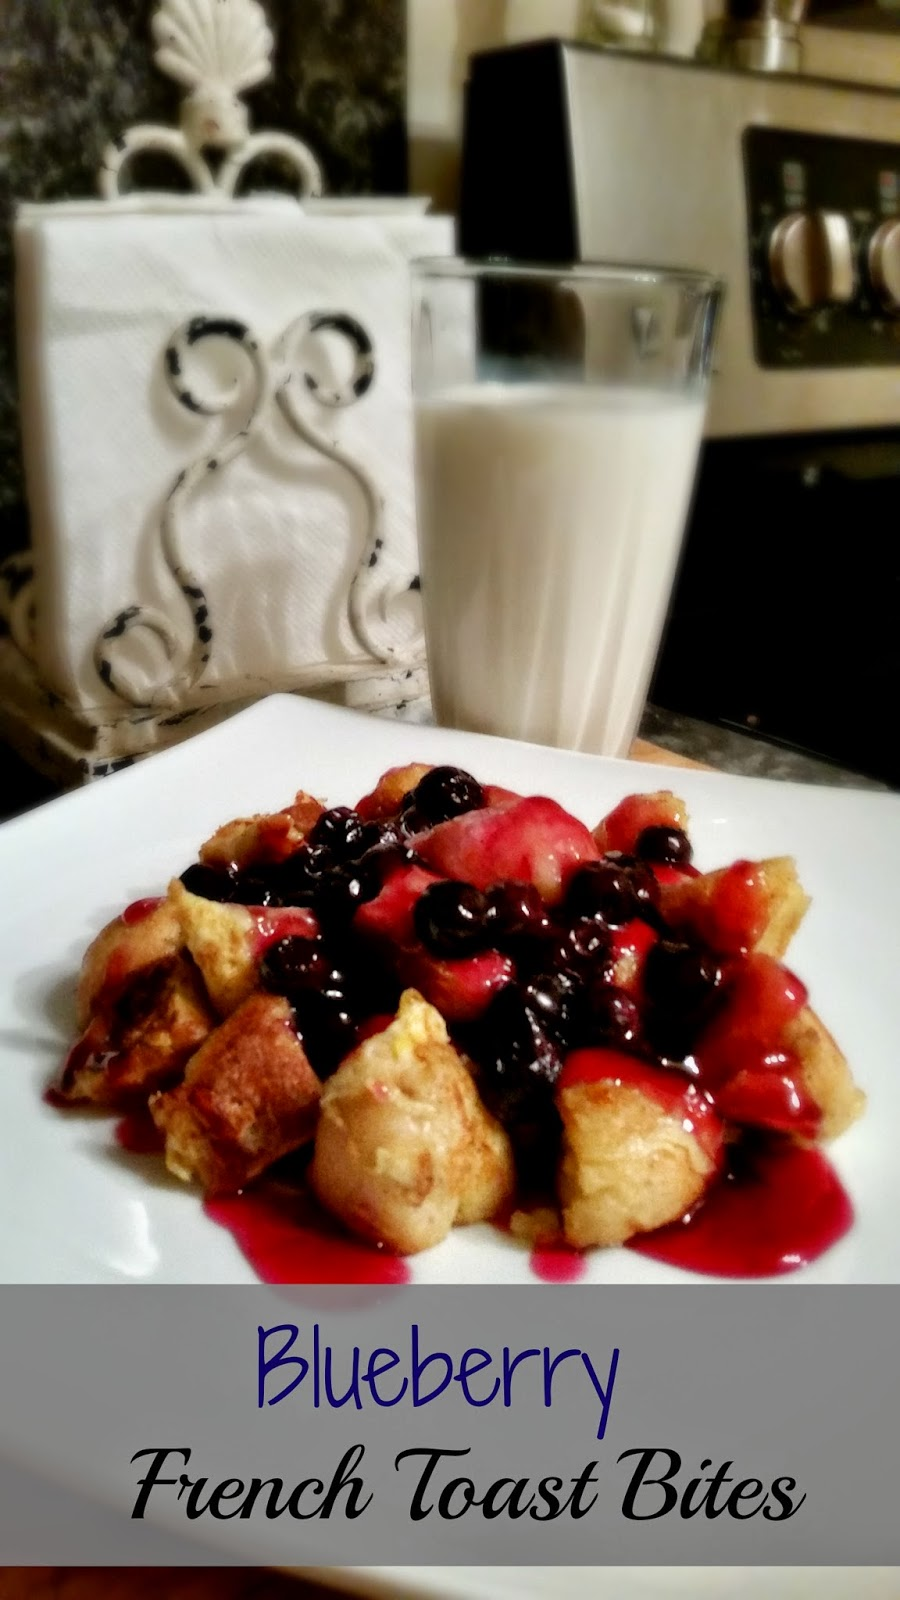 Rhodes-bread-breakfast. Blueberry French Toast Bites